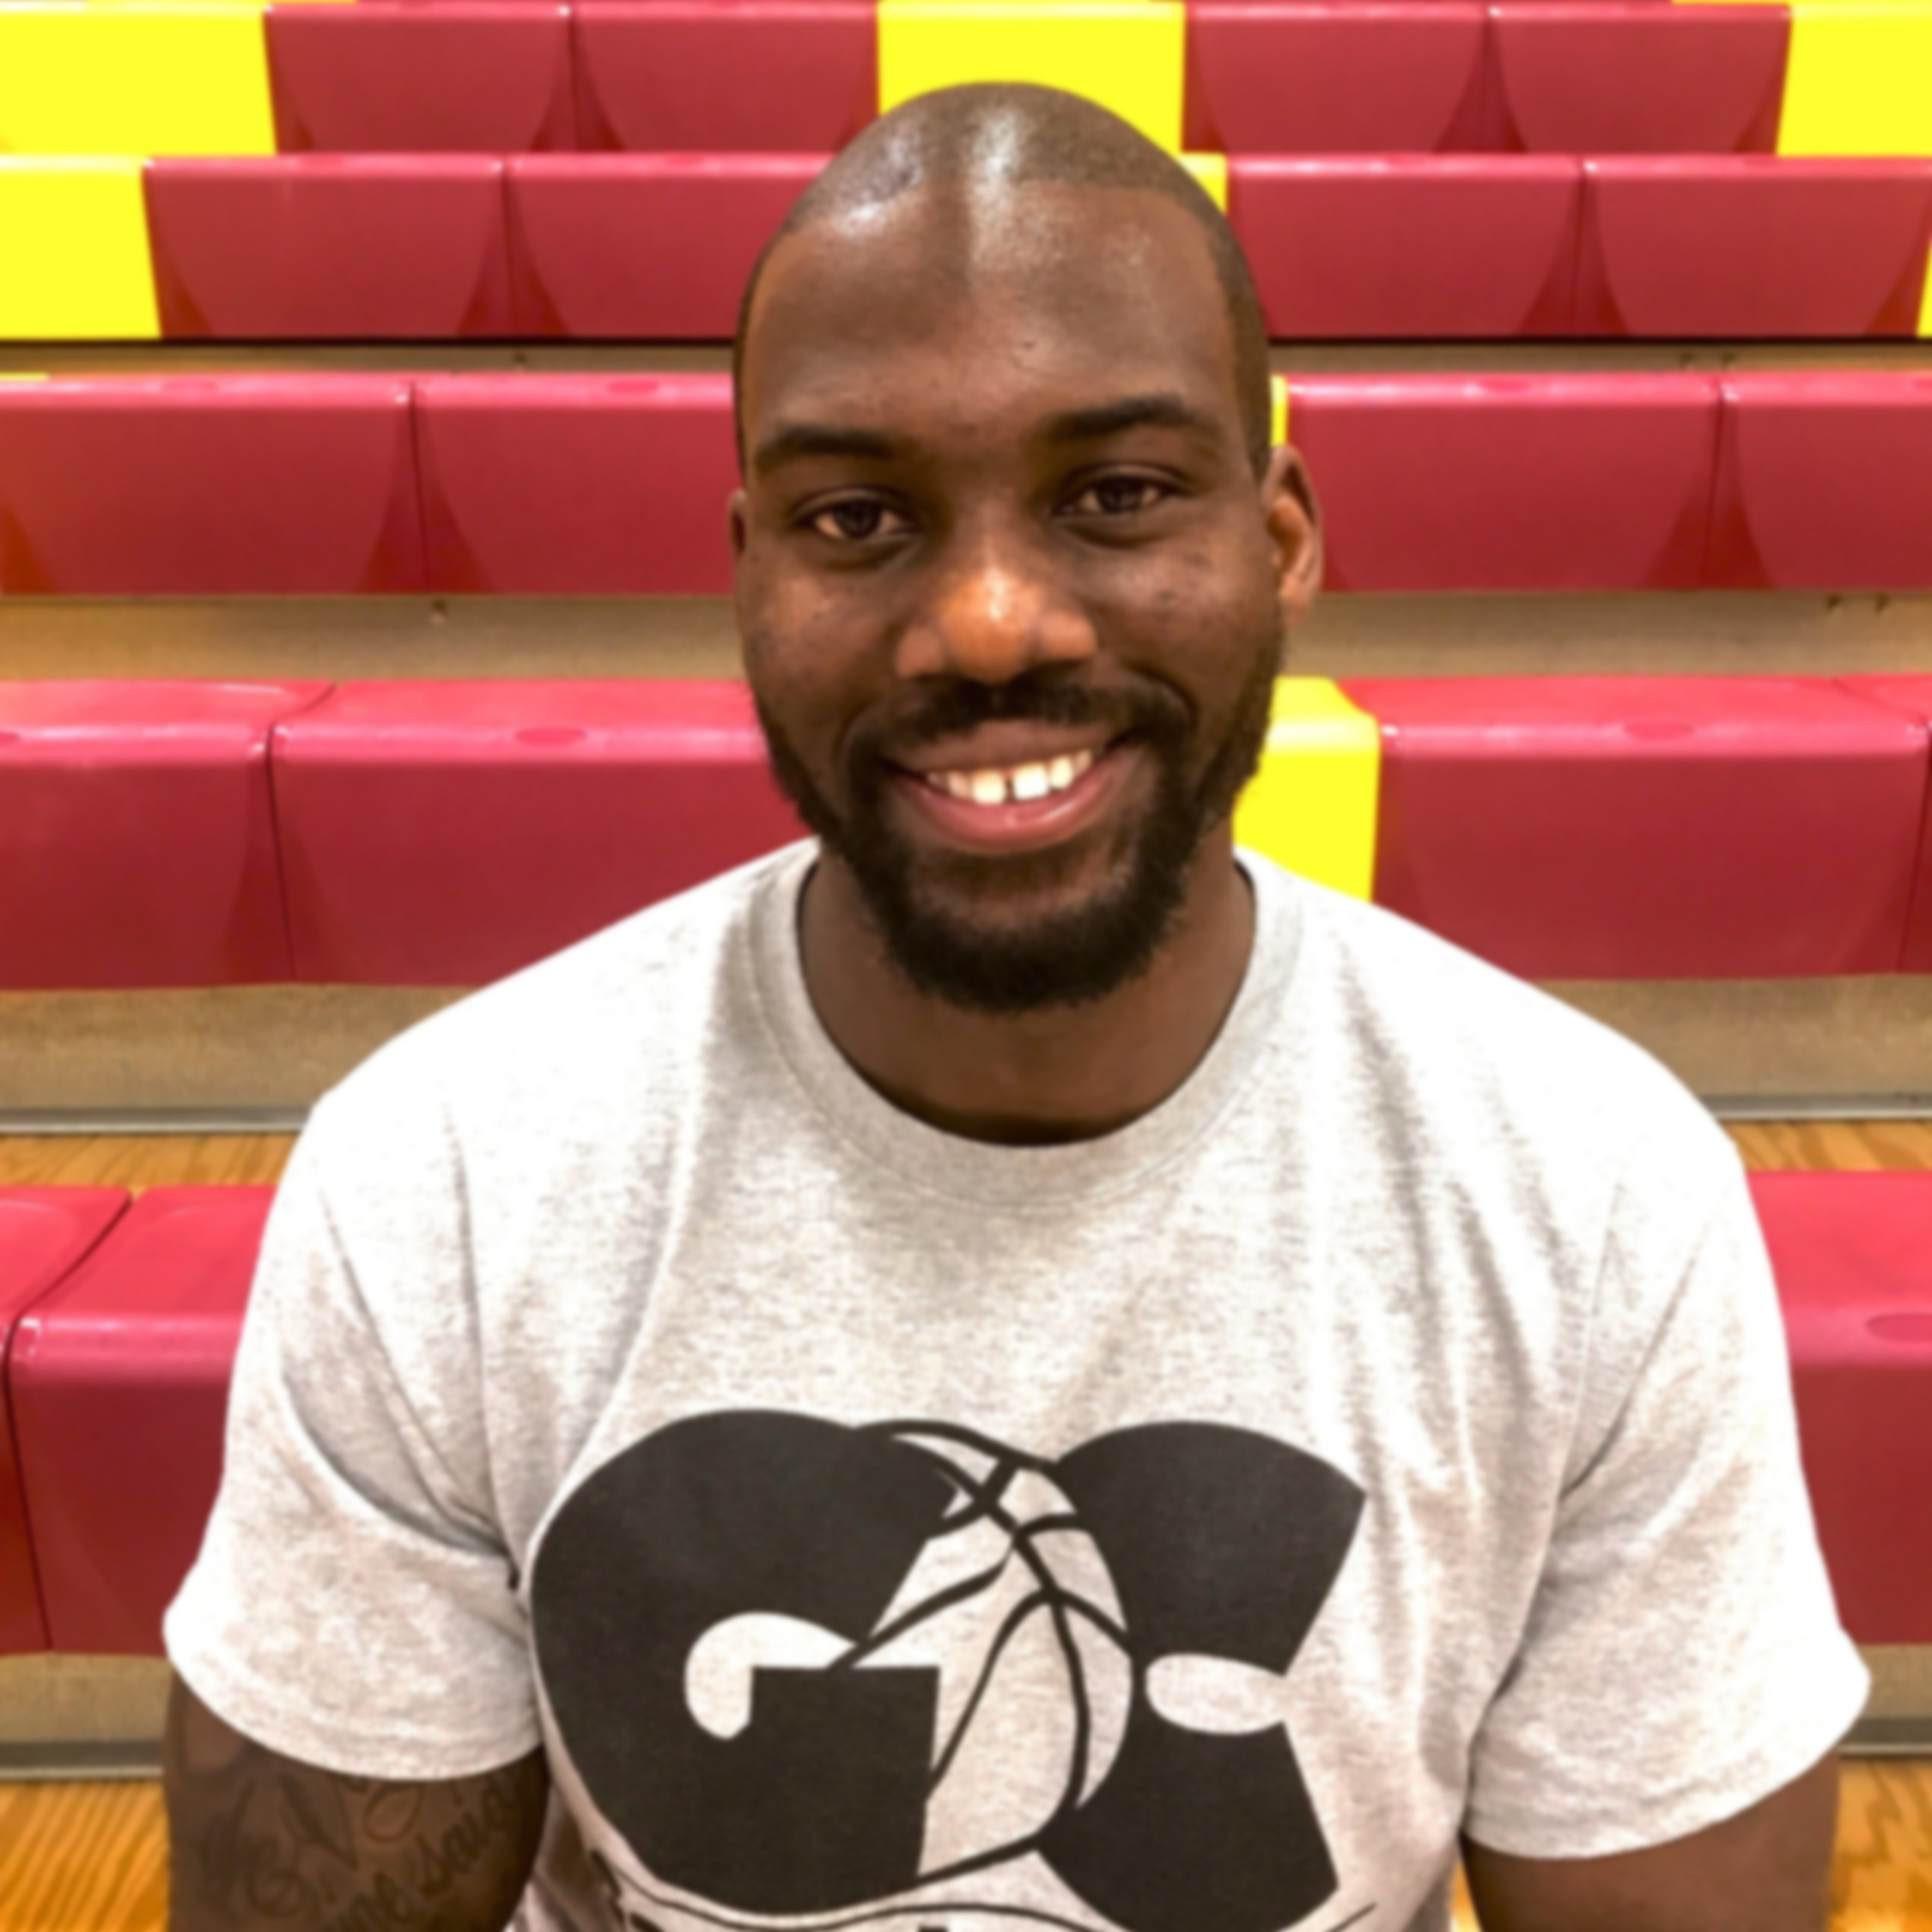 Alex Kayode - Wilson HS Alumni, SGV Tribune All-Star, Class of 2006. Over 10 years of training experience. Currently the Player Development Specialist for Glen A. Wilson High School Varsity Boy's Basketball. BS in Behavioral Science from National University, San Diego. Proud father of one.